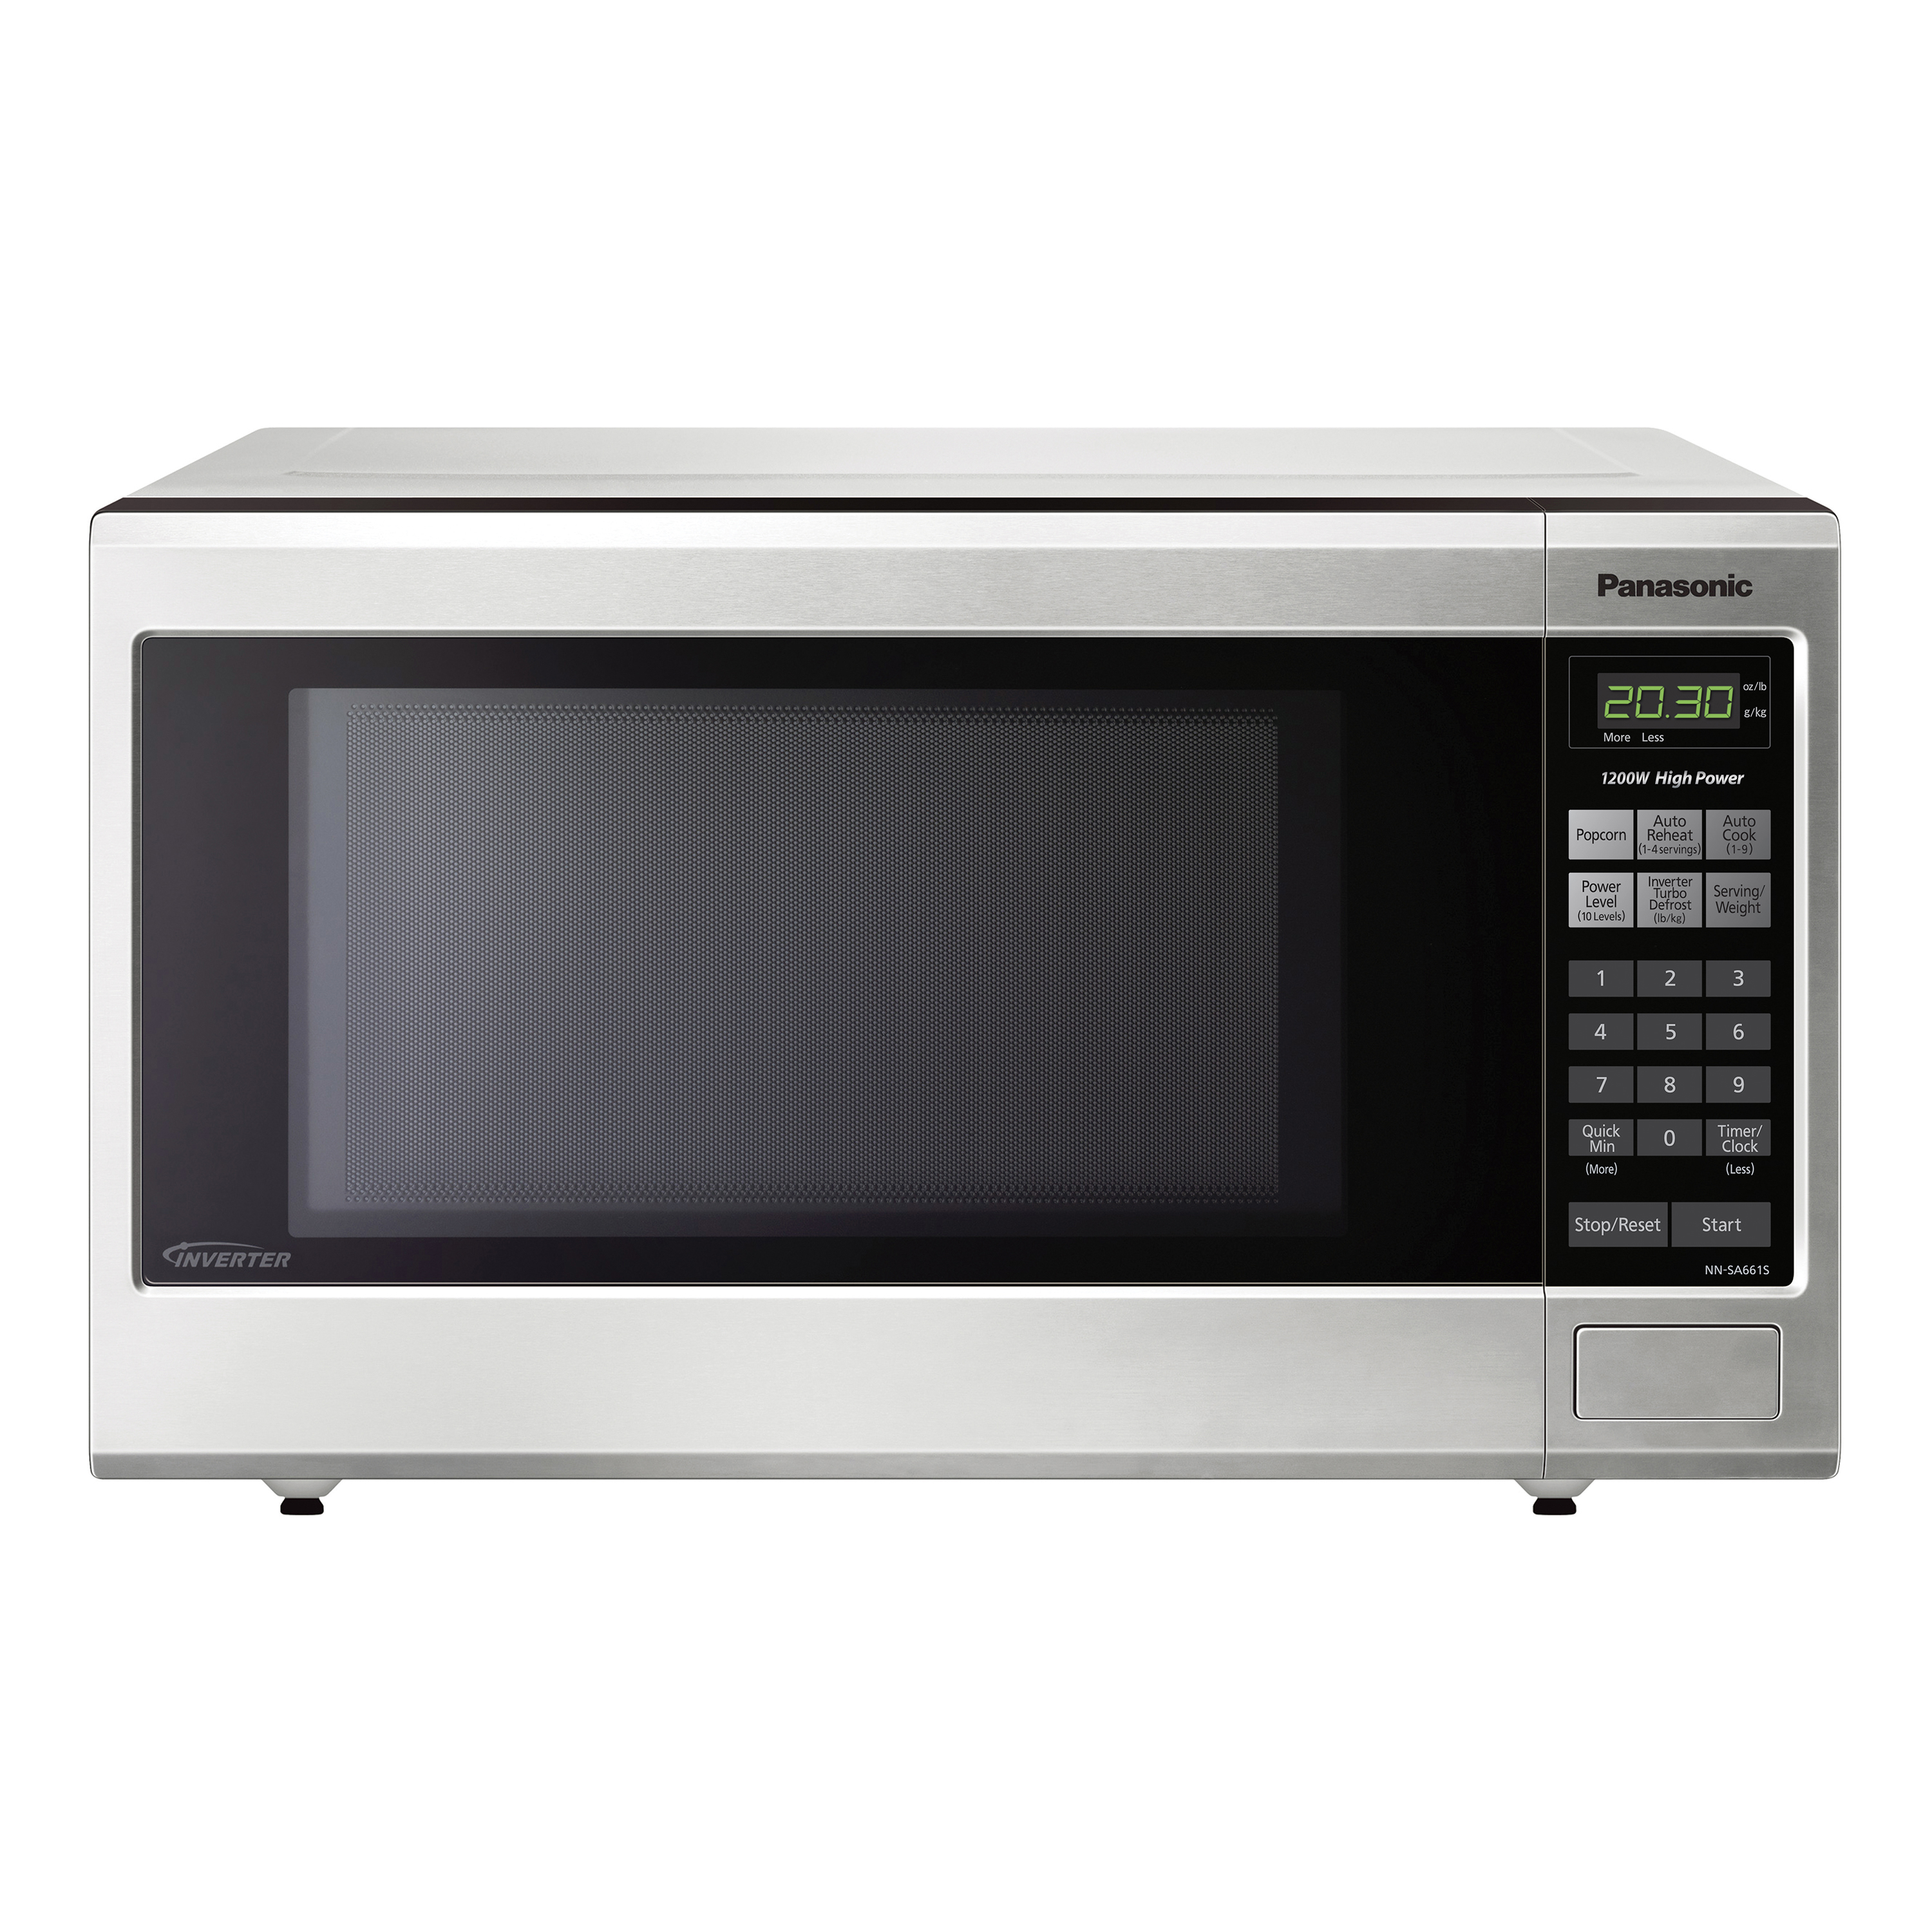 Panasonic 1 2 Cu Ft Microwave Oven Stainless Steel